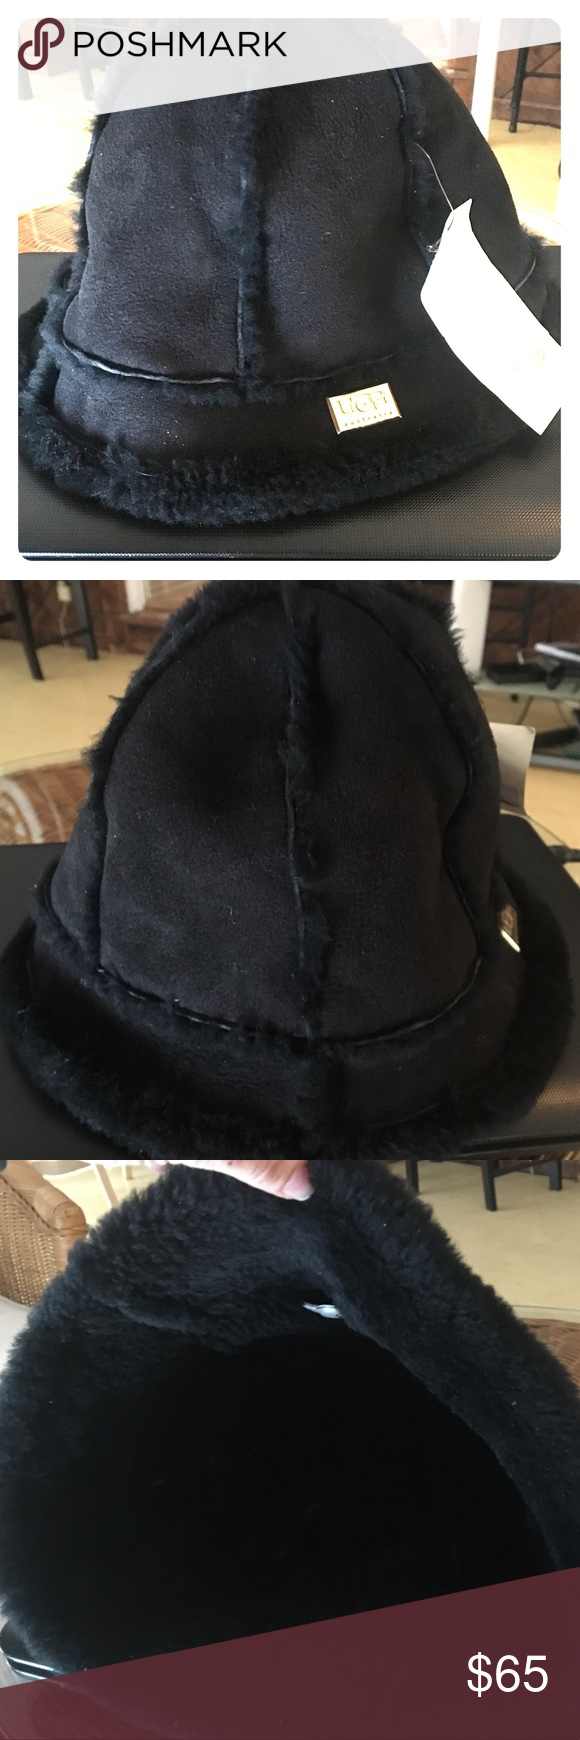 9662da2def64d Brand New with Tags Ugg Black Bucket Hat w Sherpa Selling a brand new with  tags